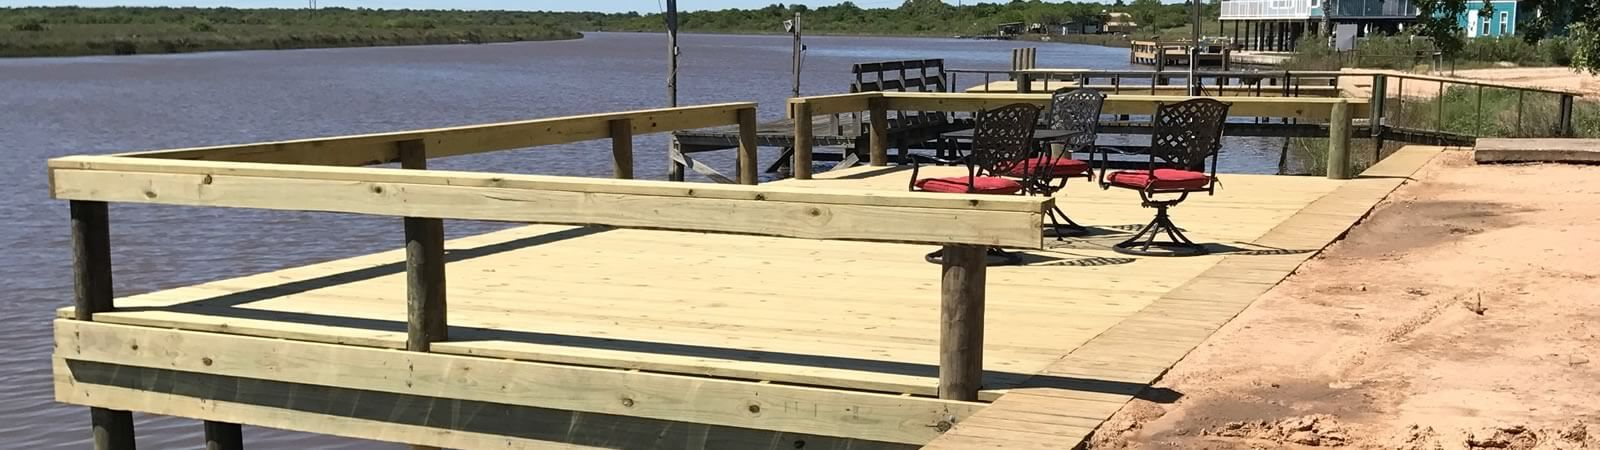 Custom Built Piers, decks and patio company in Victoria Texas